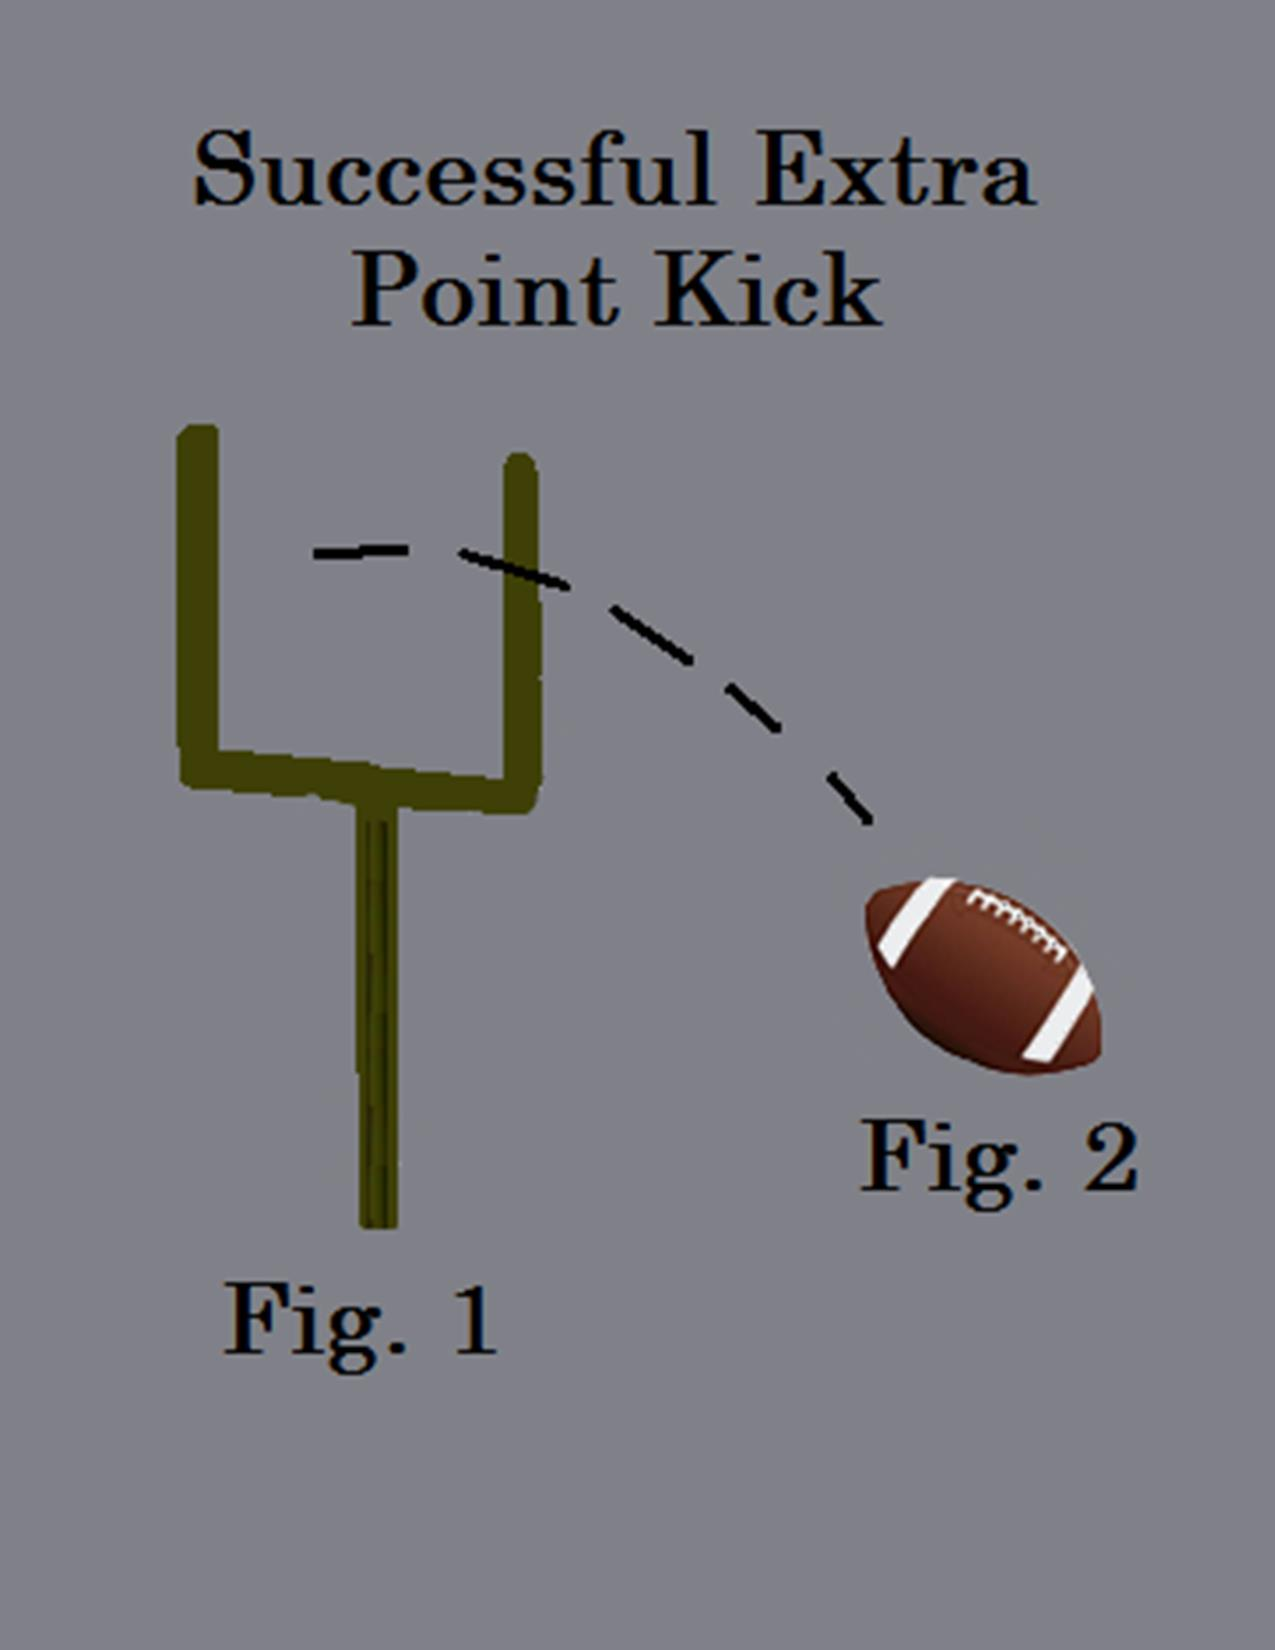 Successful Extra Point Kick